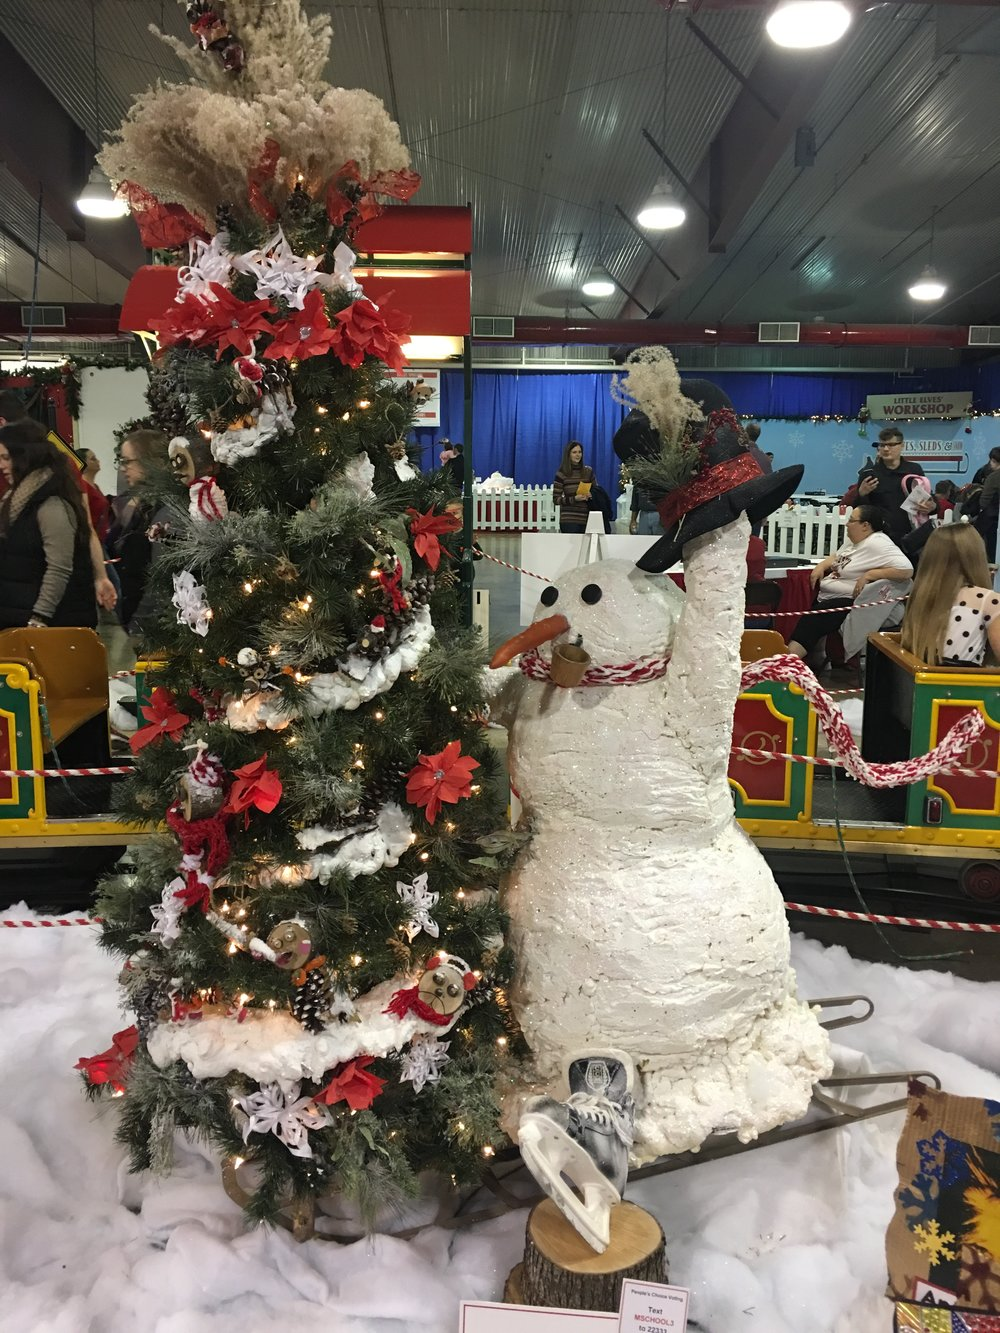 This was one of our favorite trees at the Festival of Trees event.Cindy Ladage